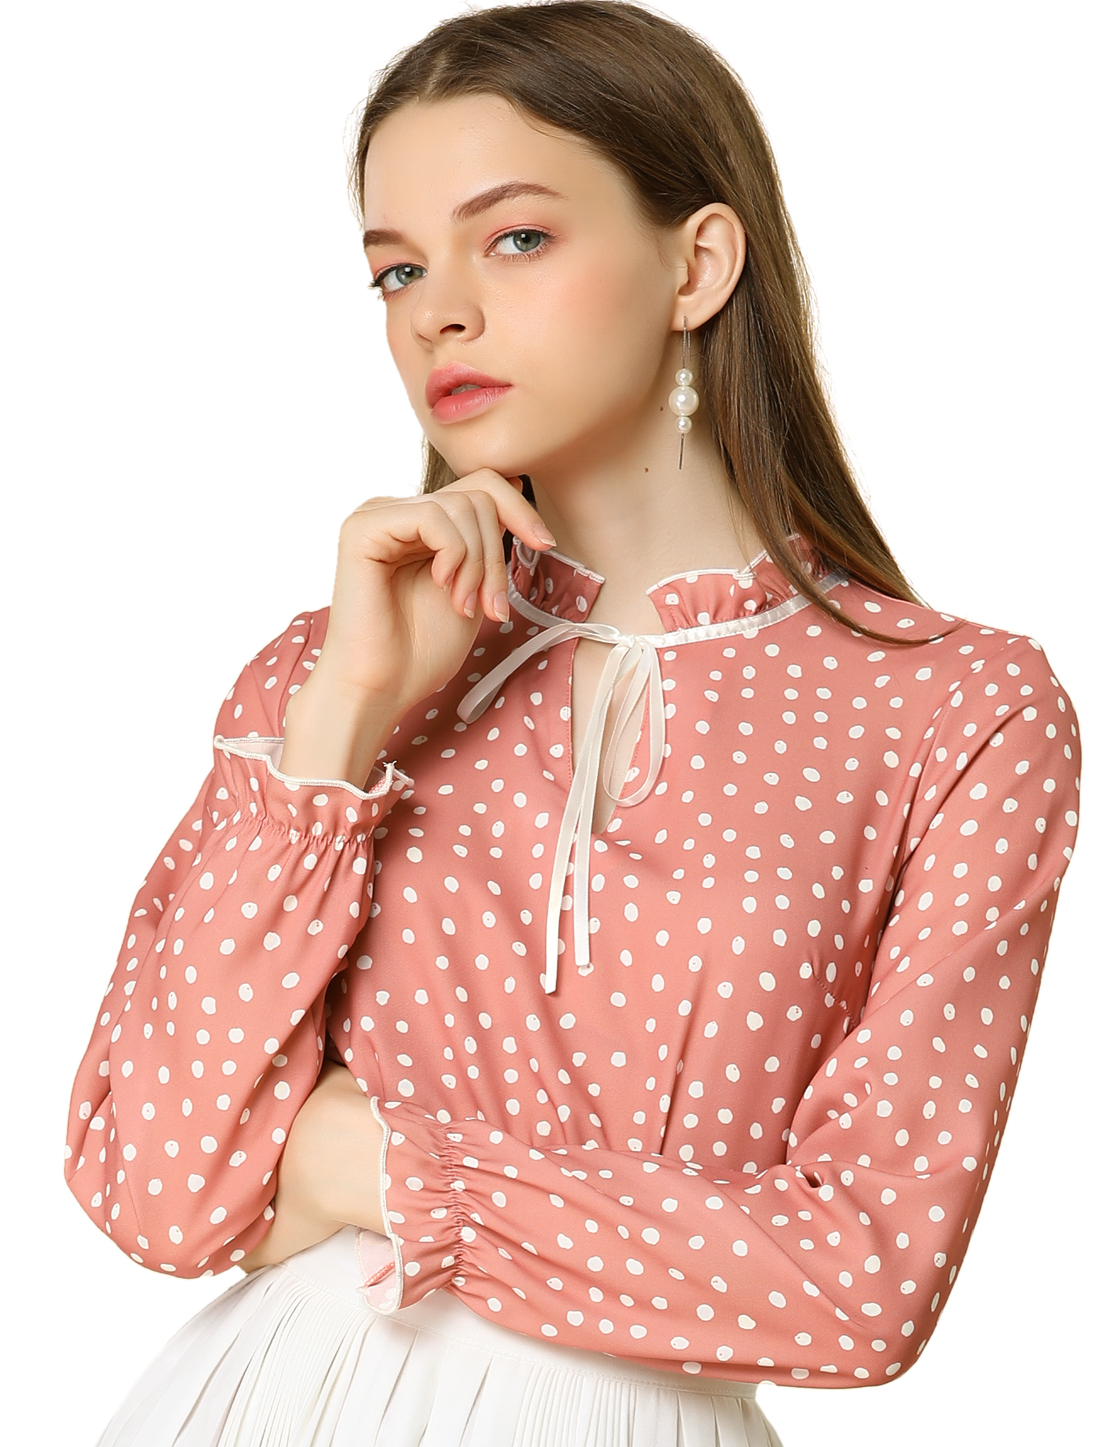 Allegra K Women's Tie Ruffled Neck Polka Dots Blouse Bell Sleeves Tops Pink XS